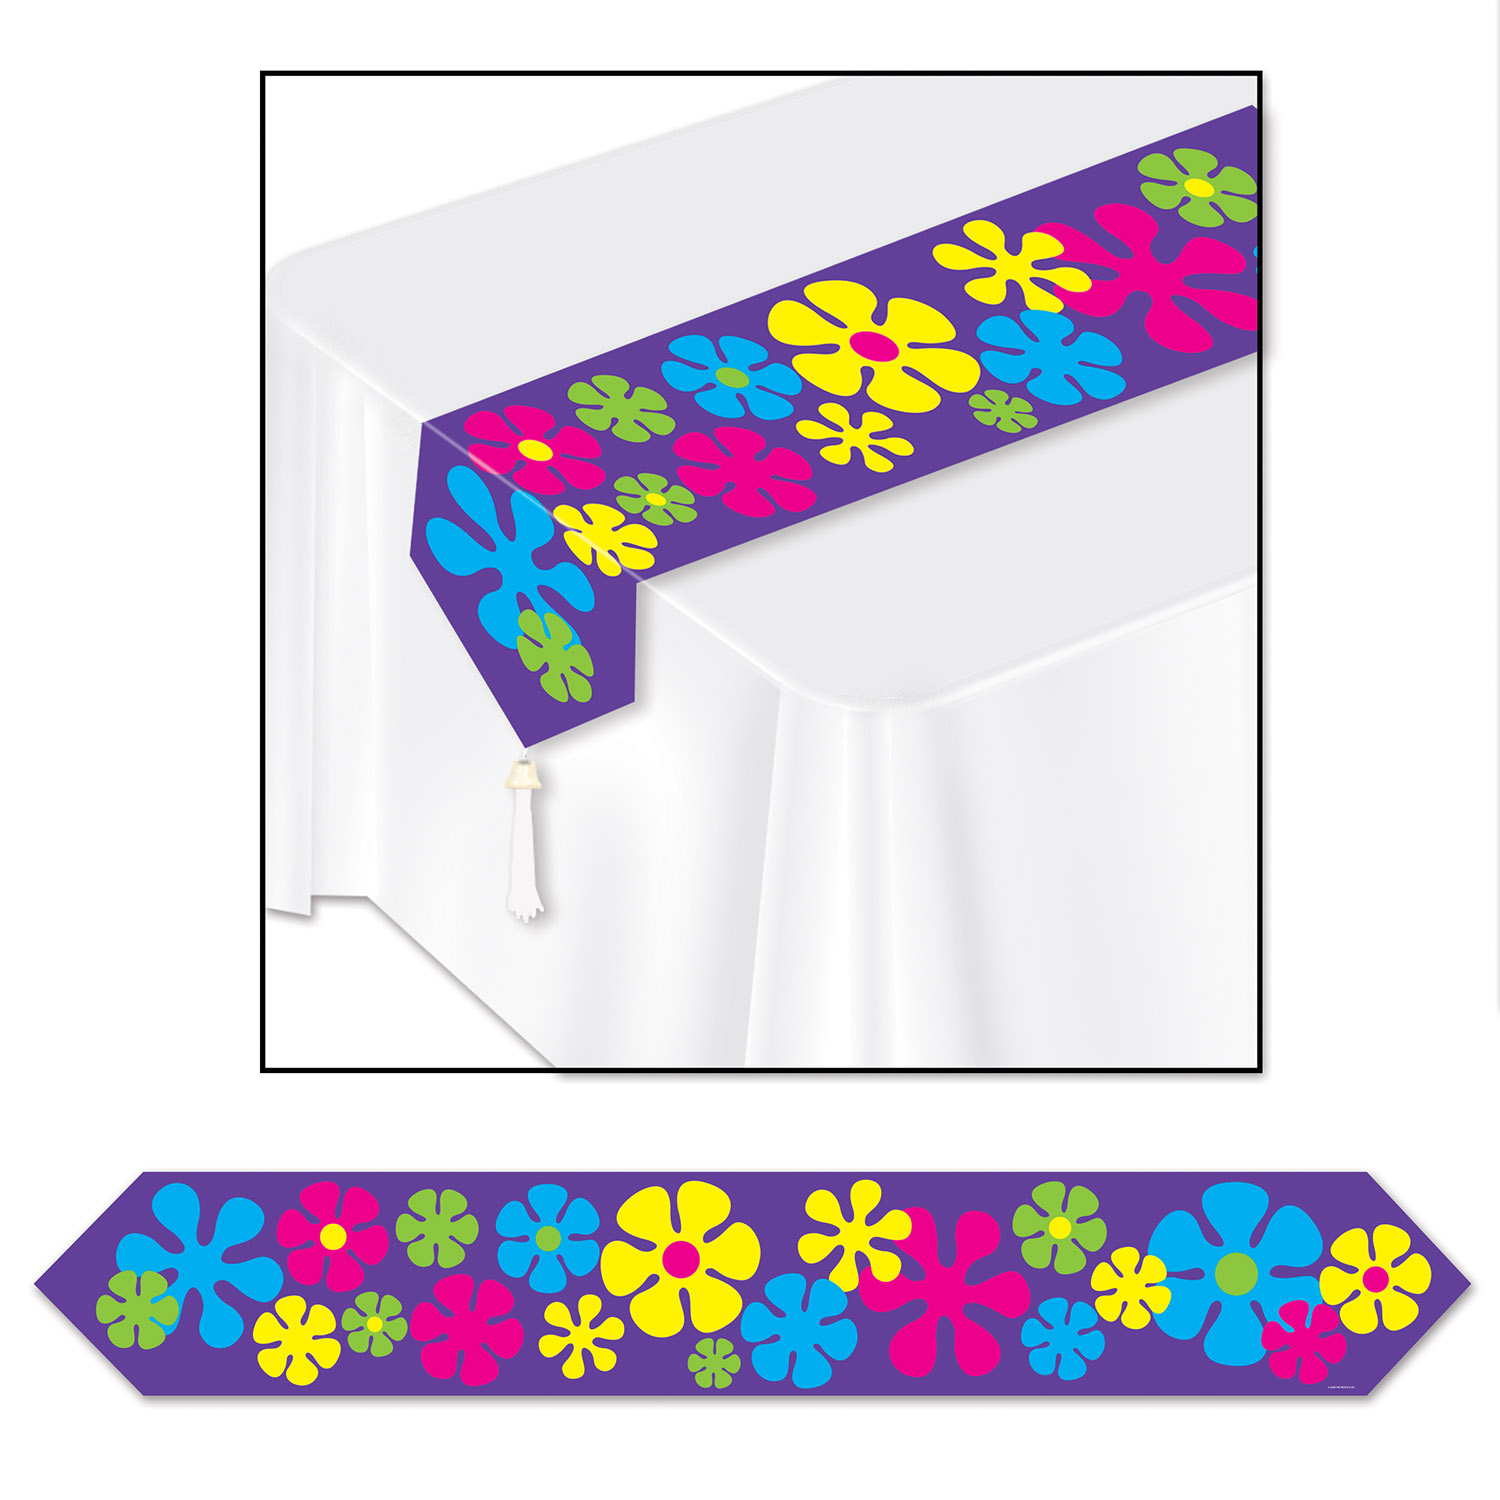 Printed Retro Flowers Table Runner (Pack of 12) Table runners, retro table runner, 60s, flowers, retro flowers, 60s flowers